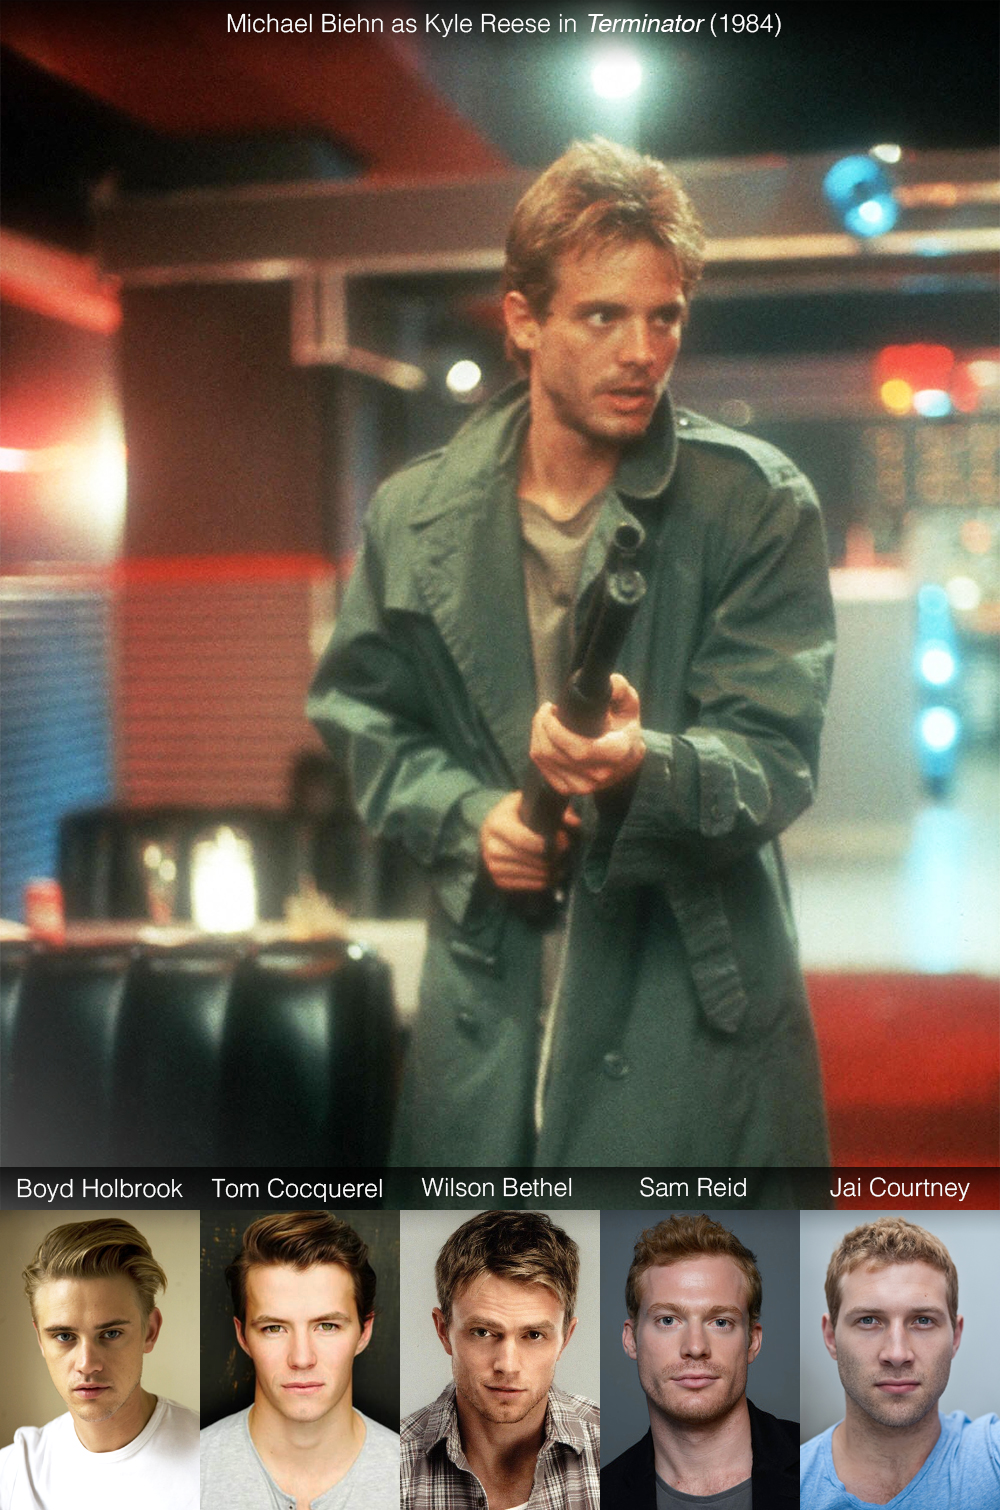 actors-up-for-the-role-of-kyle-reese-in-terminator-genesis.jpg